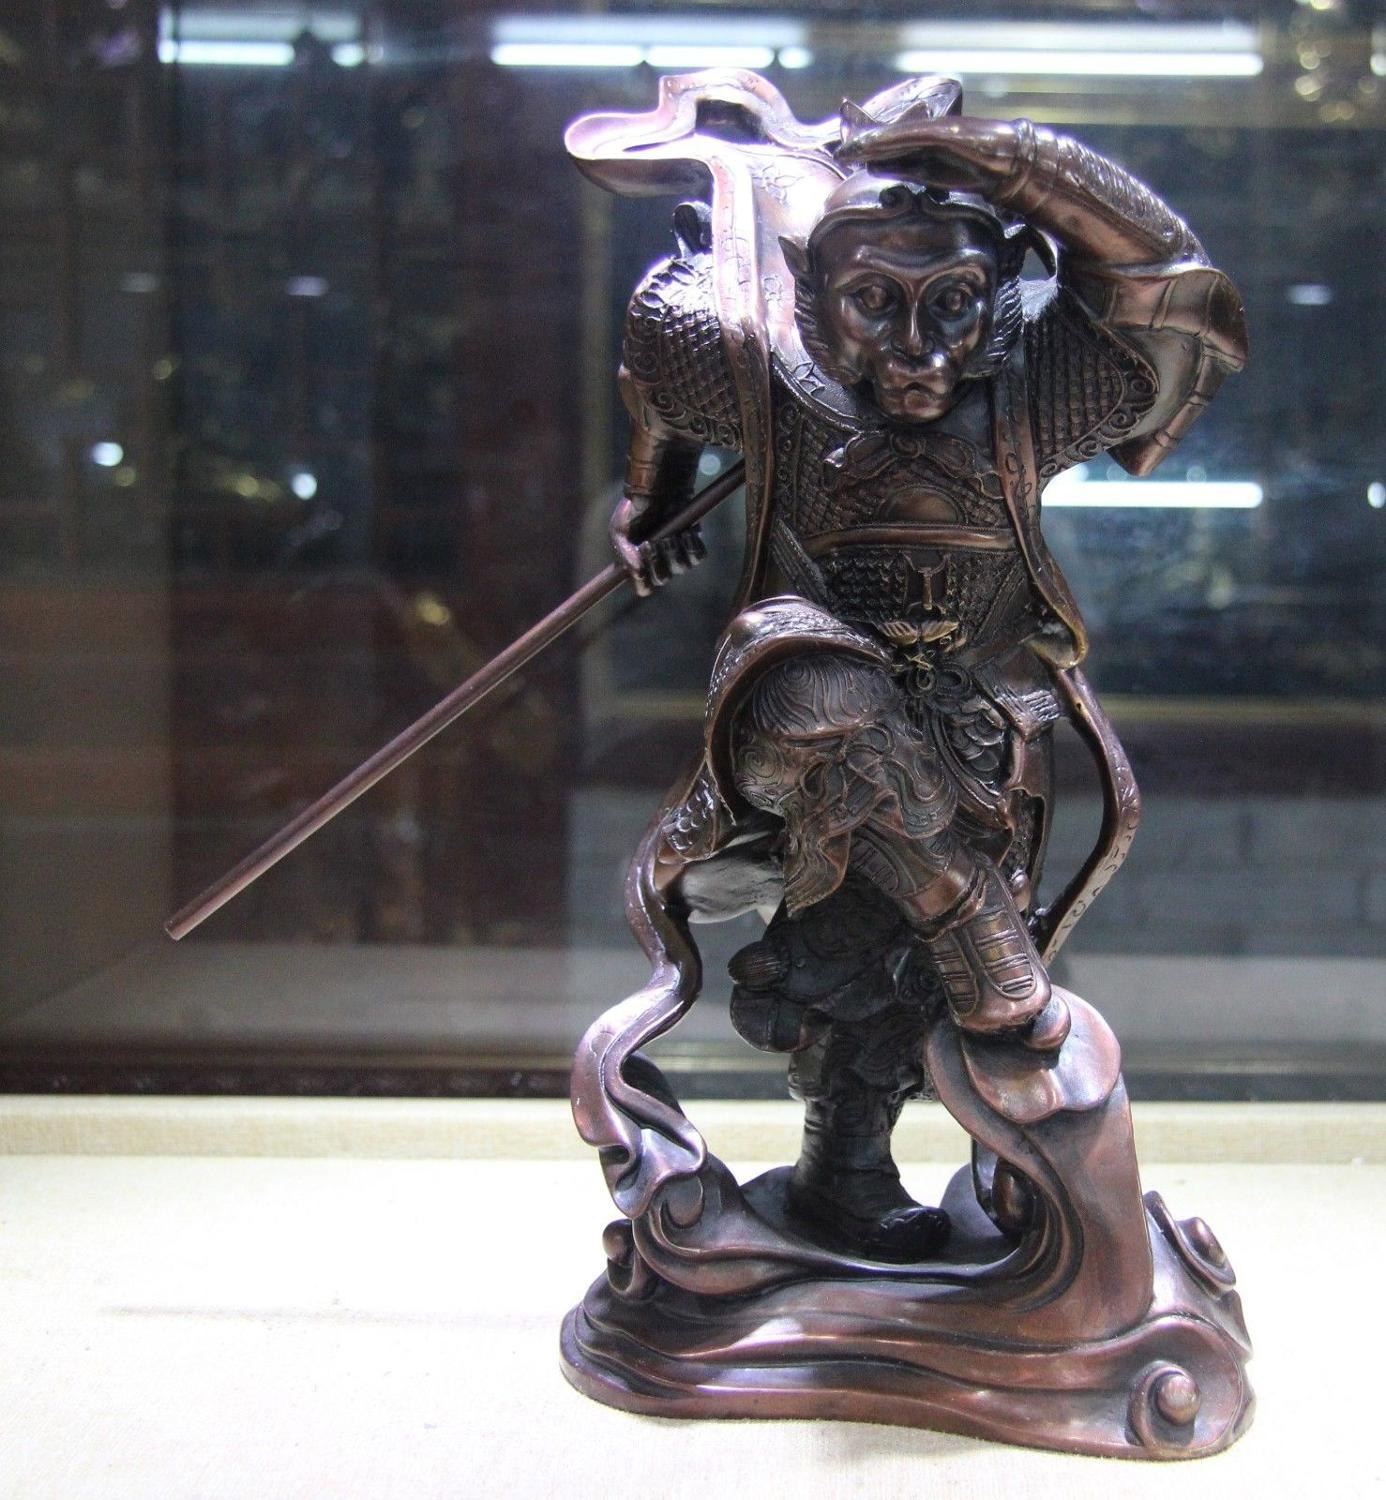 Chinese Bronze Great Sage Equalling Heaven Sun Wukong Monkey King Patung Buddha Happy Natural Sandstone Brazil 8189ct Free Shipping China Copper Famous Journey To The West Sunwukong Statue